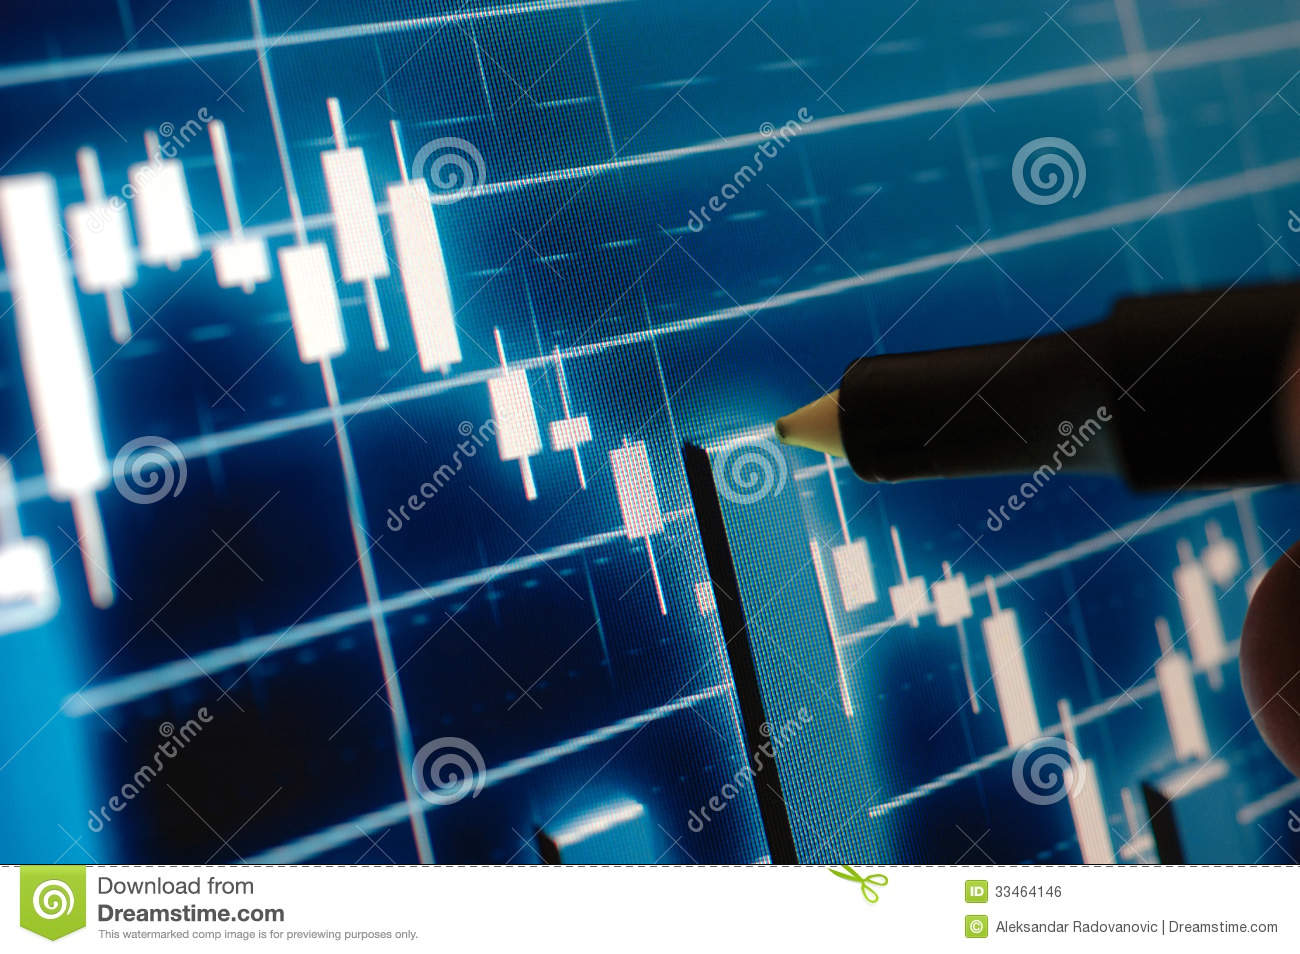 how to read and analyze stock charts